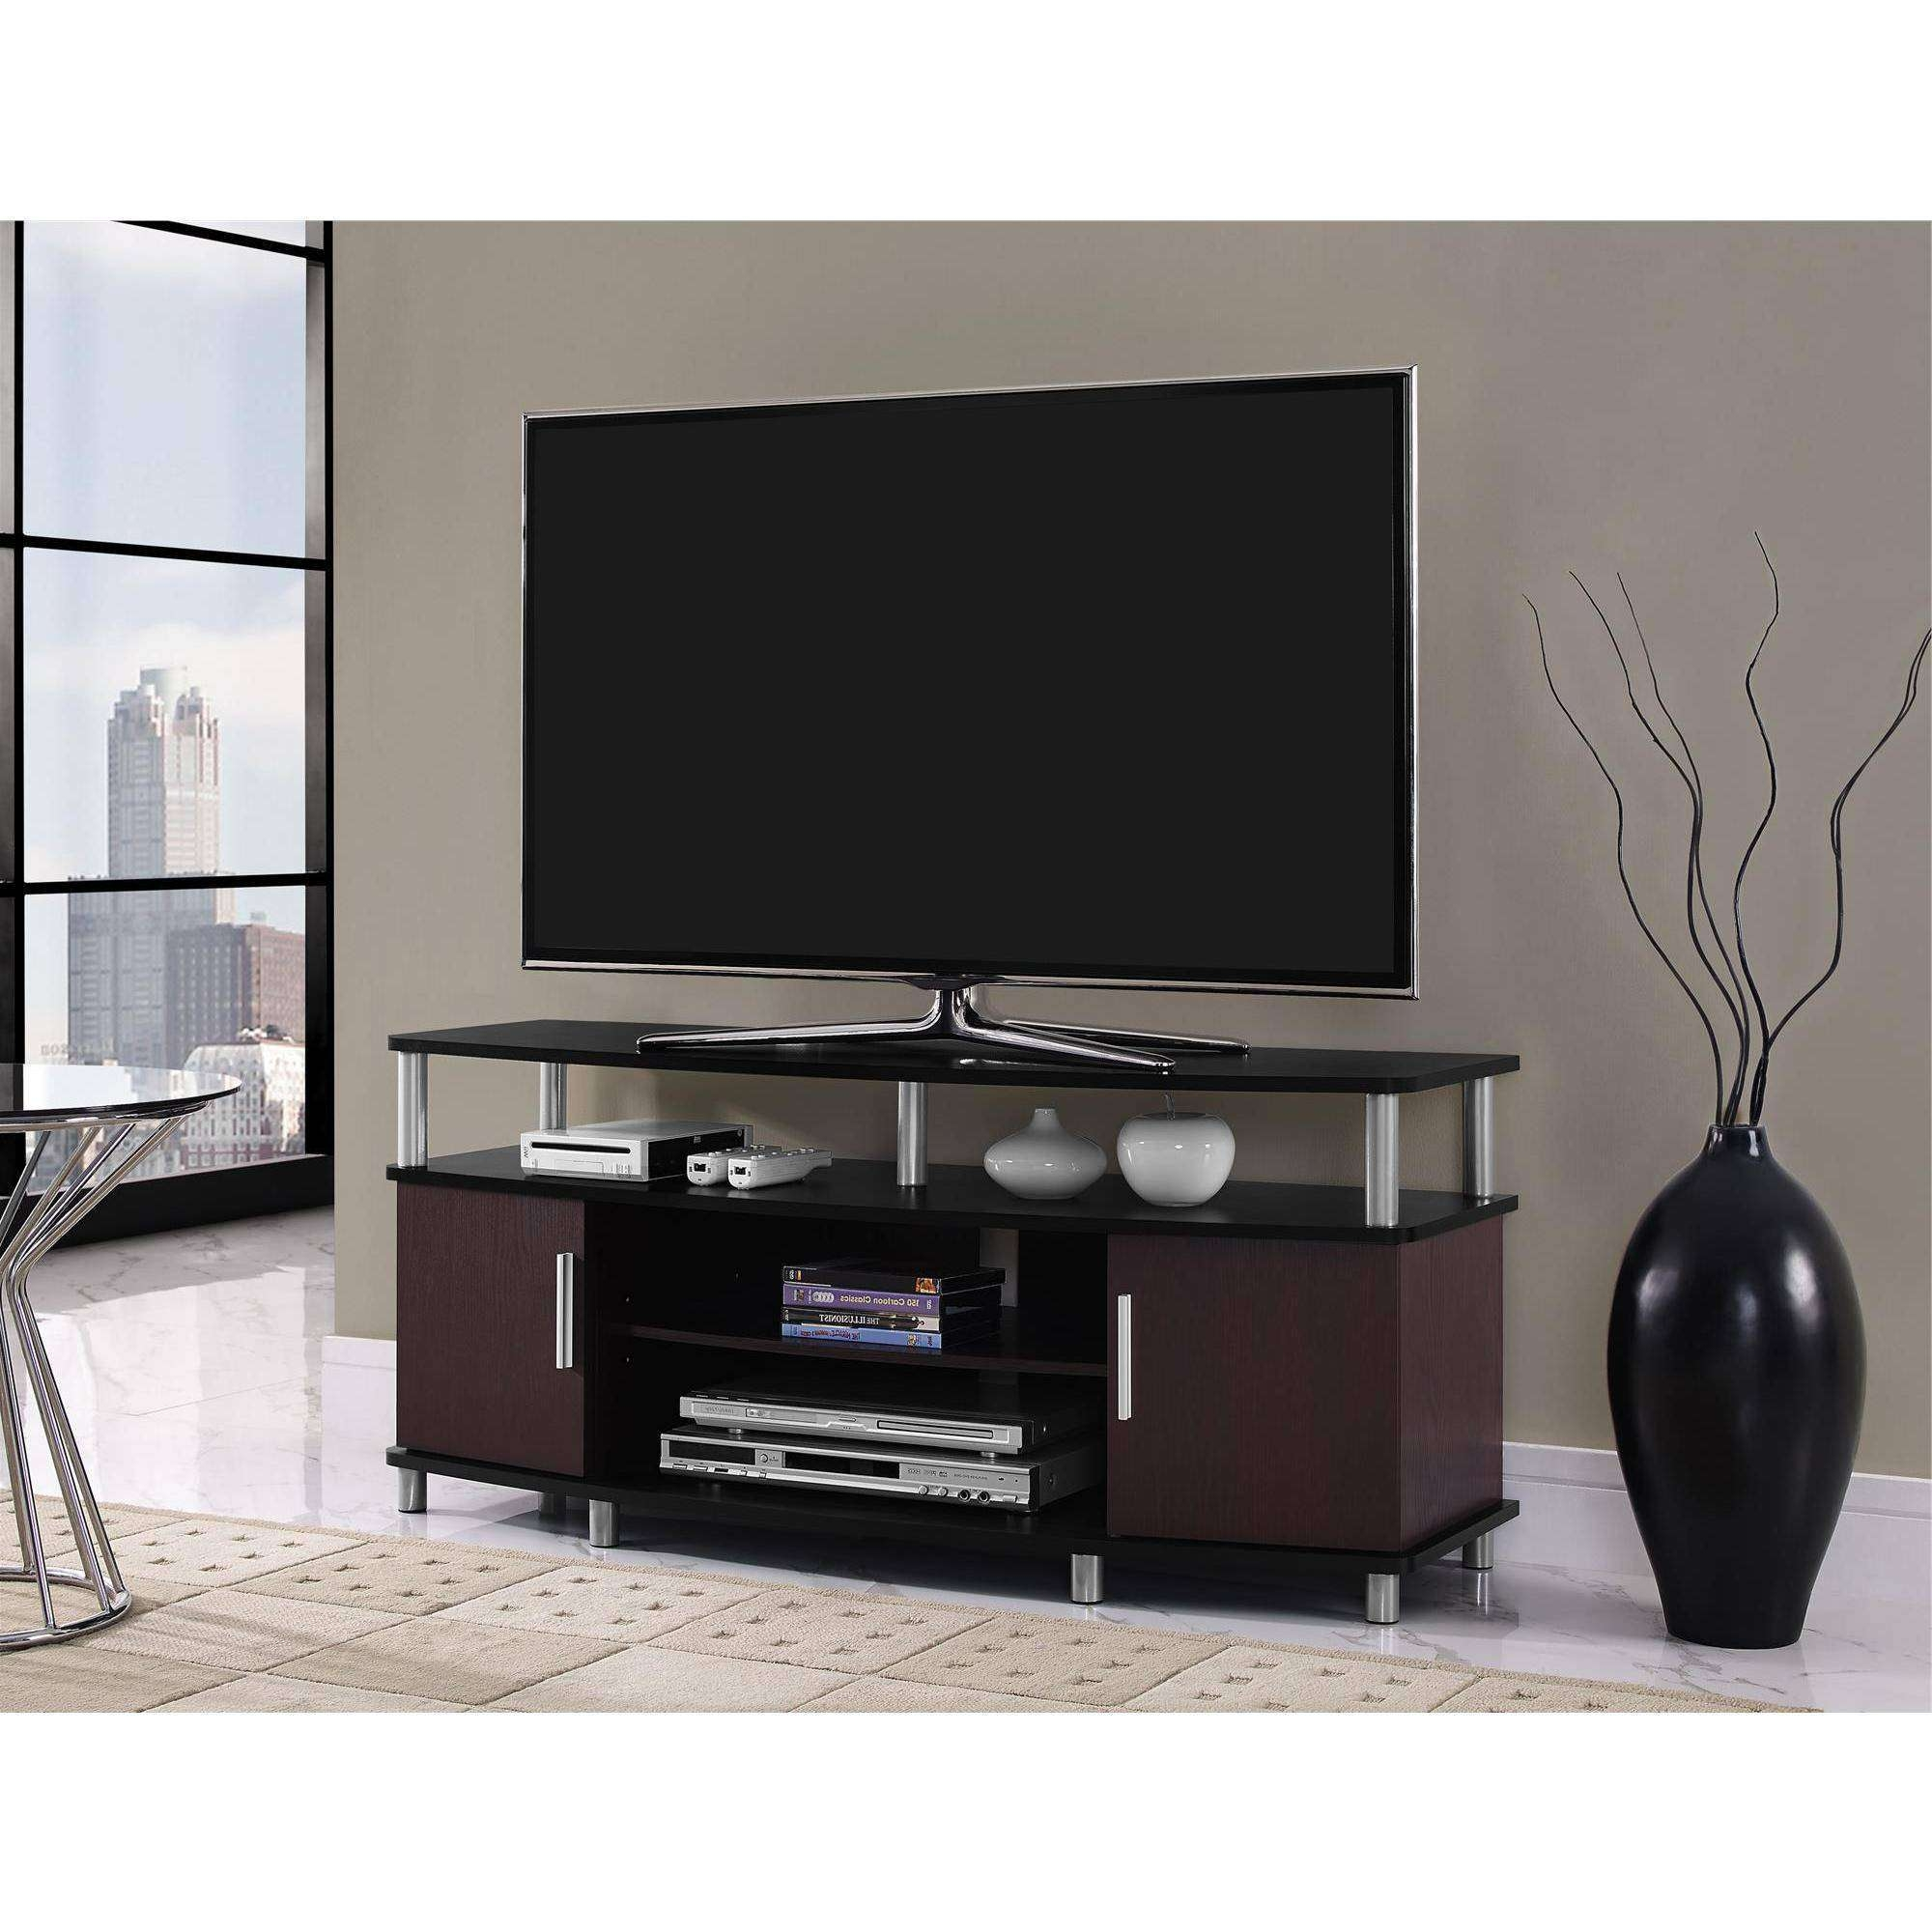 Tv Stands & Entertainment Centers – Walmart With Regard To Wooden Tv Stands For 50 Inch Tv (View 7 of 15)